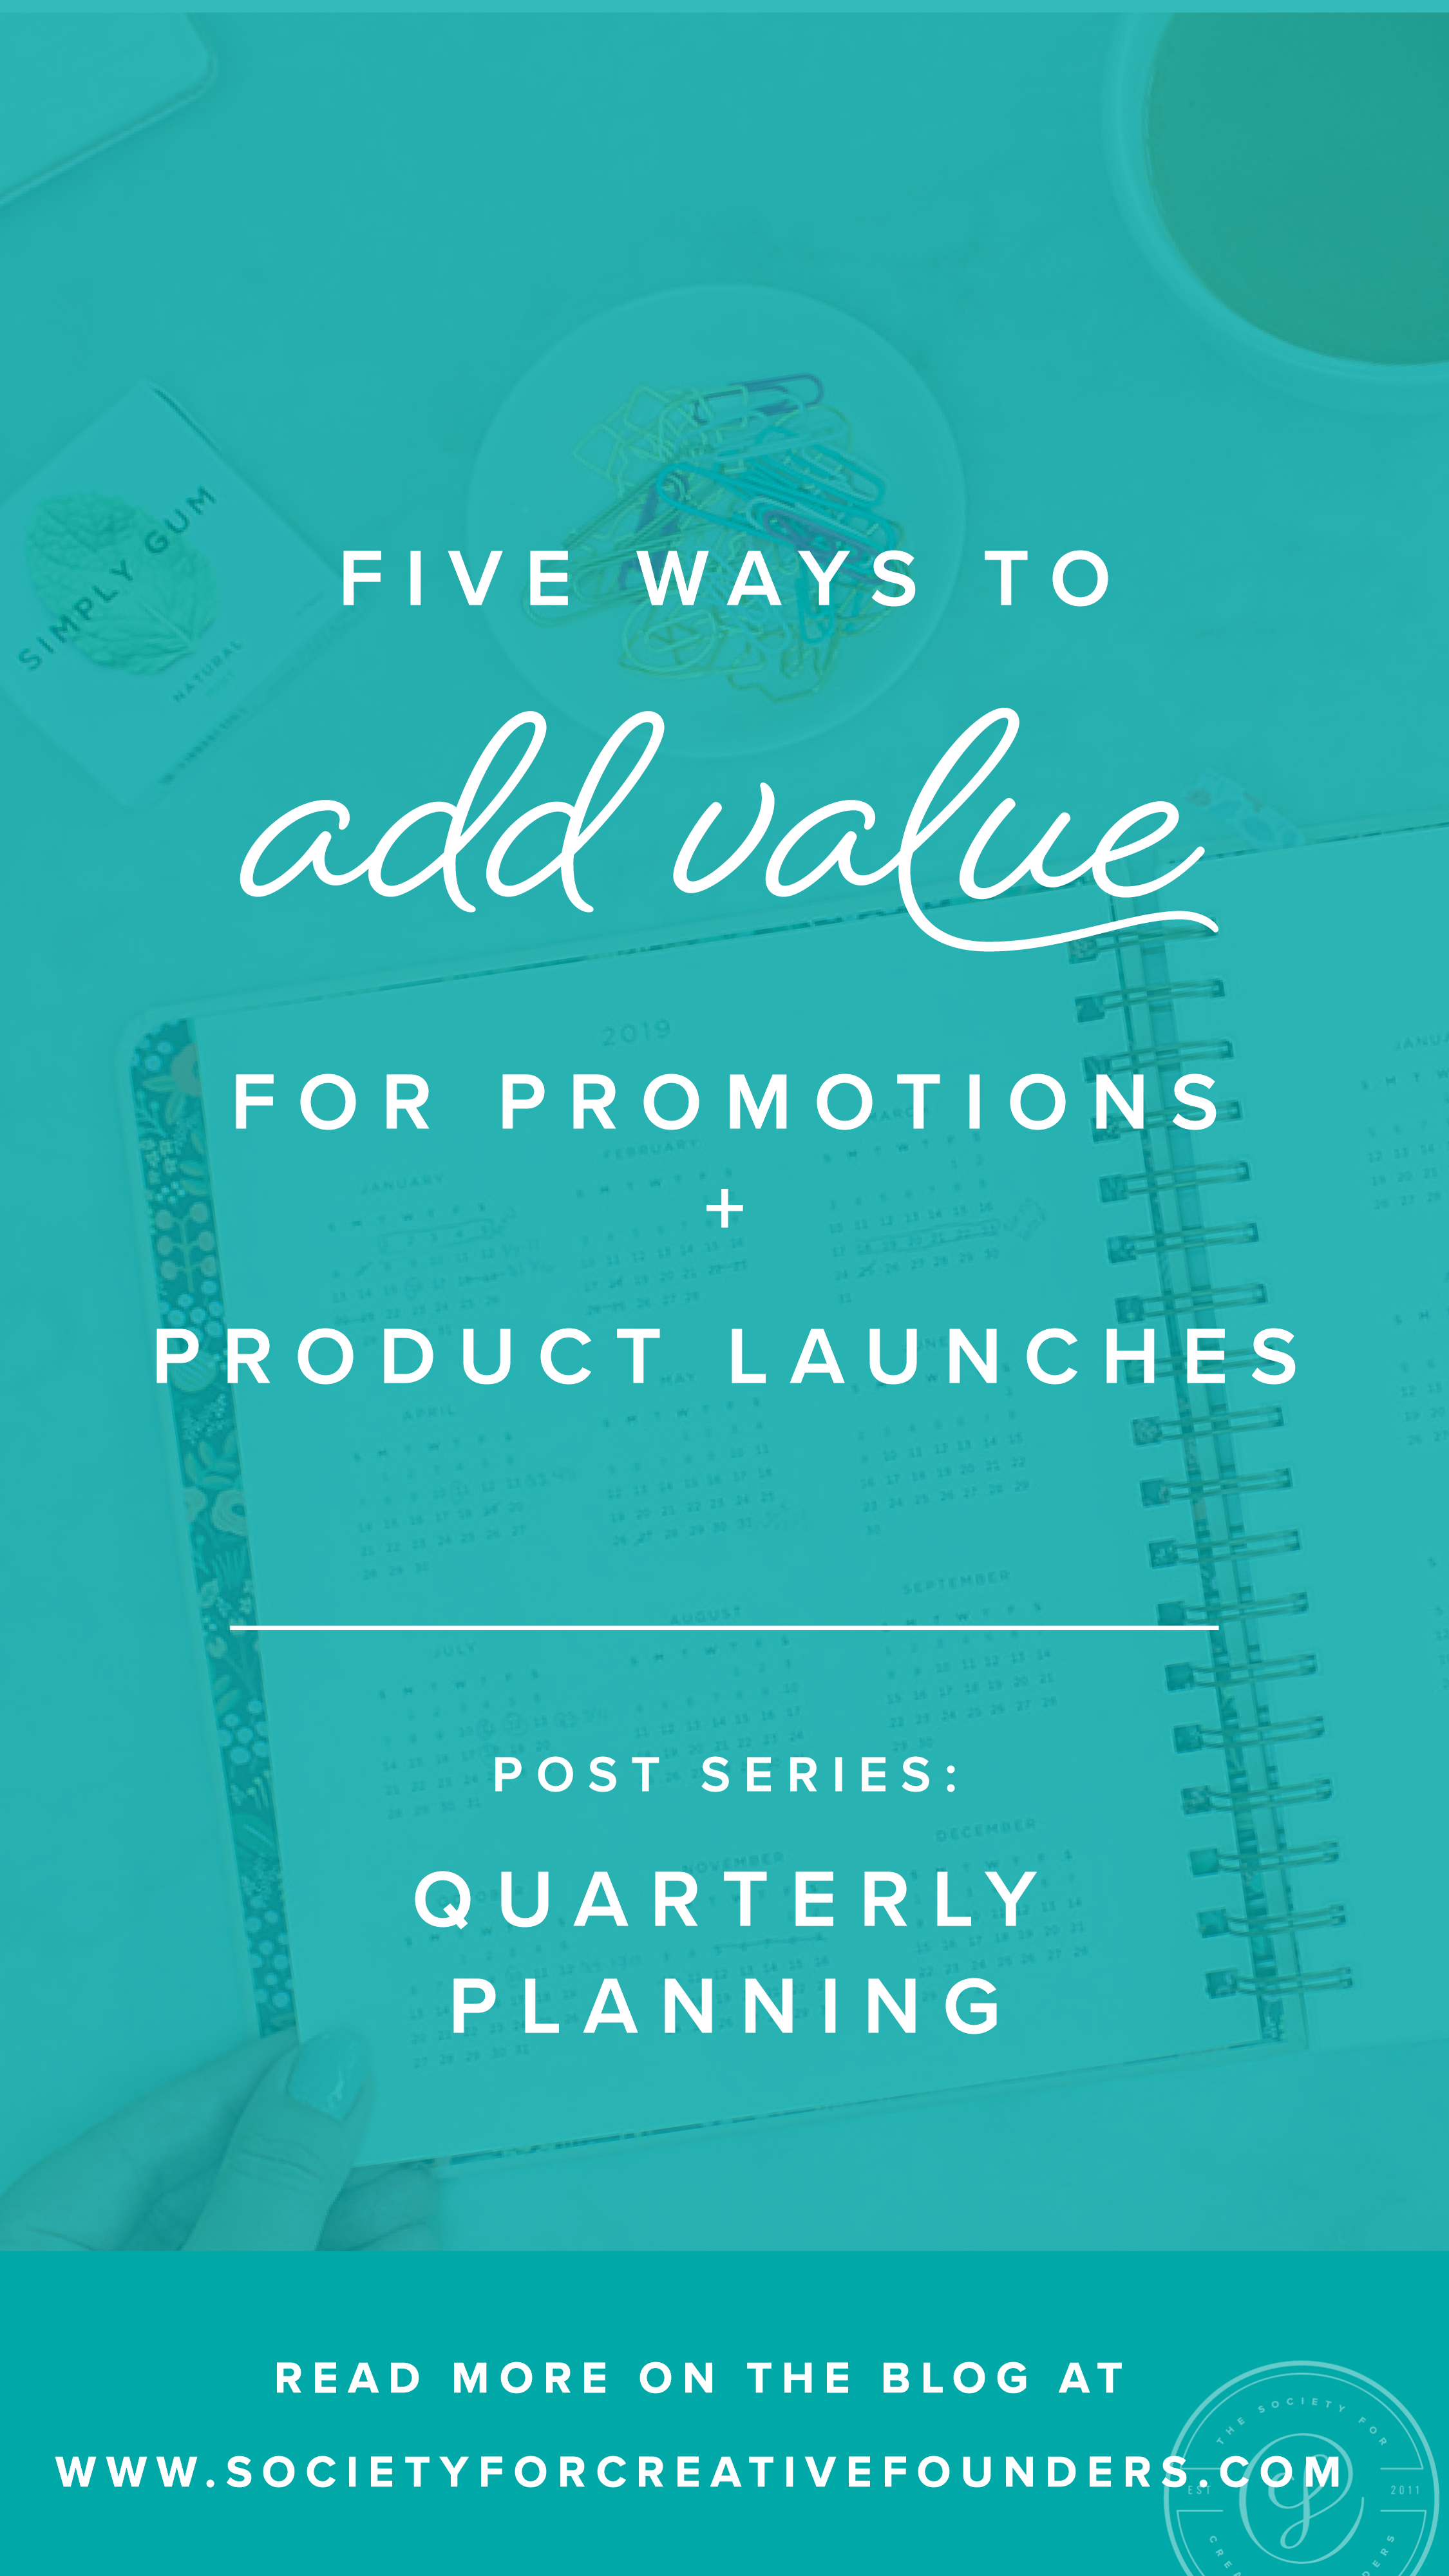 How to Add Value to a Small Business Promotion - Society for Creative Founders